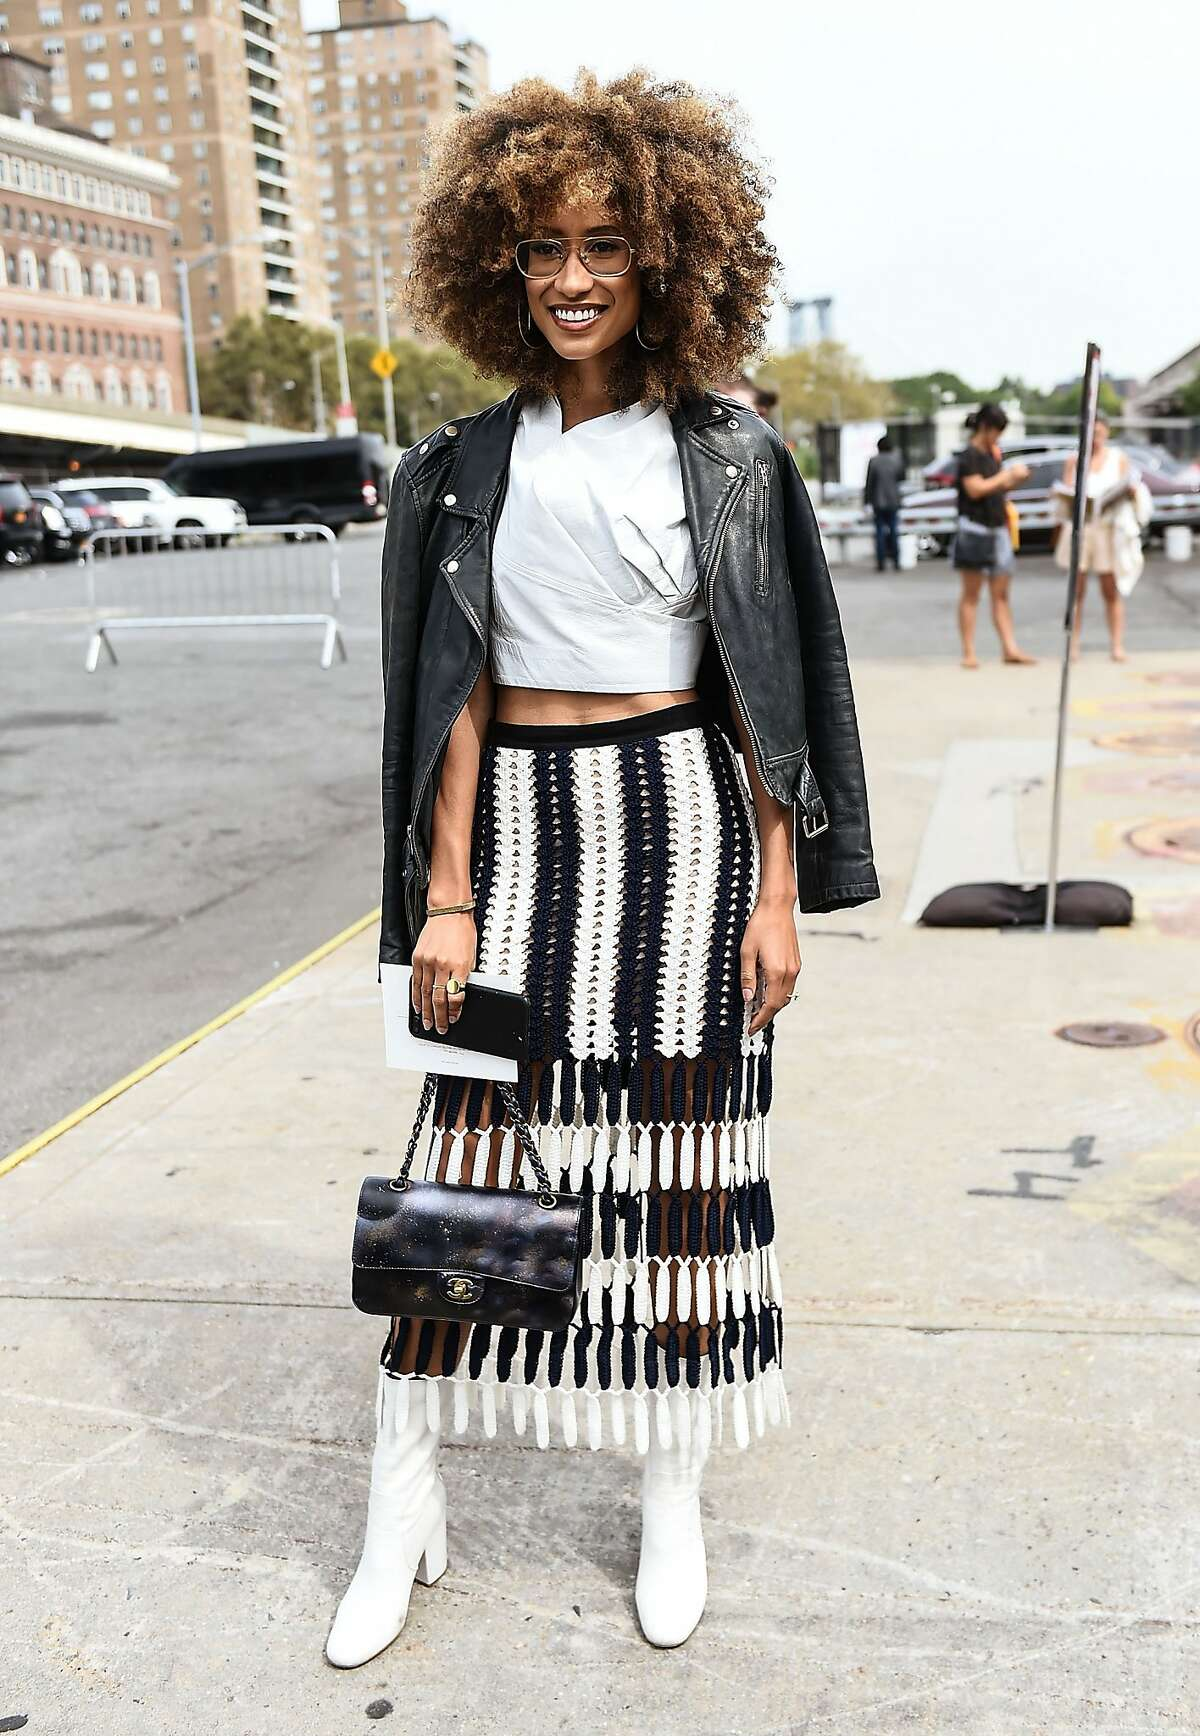 NEW YORK, NY - SEPTEMBER 12: Elaine Welteroth is seen outside the Coach show during New York Fashion Week: Women's S/S 2018 on September 12, 2017 in New York City.